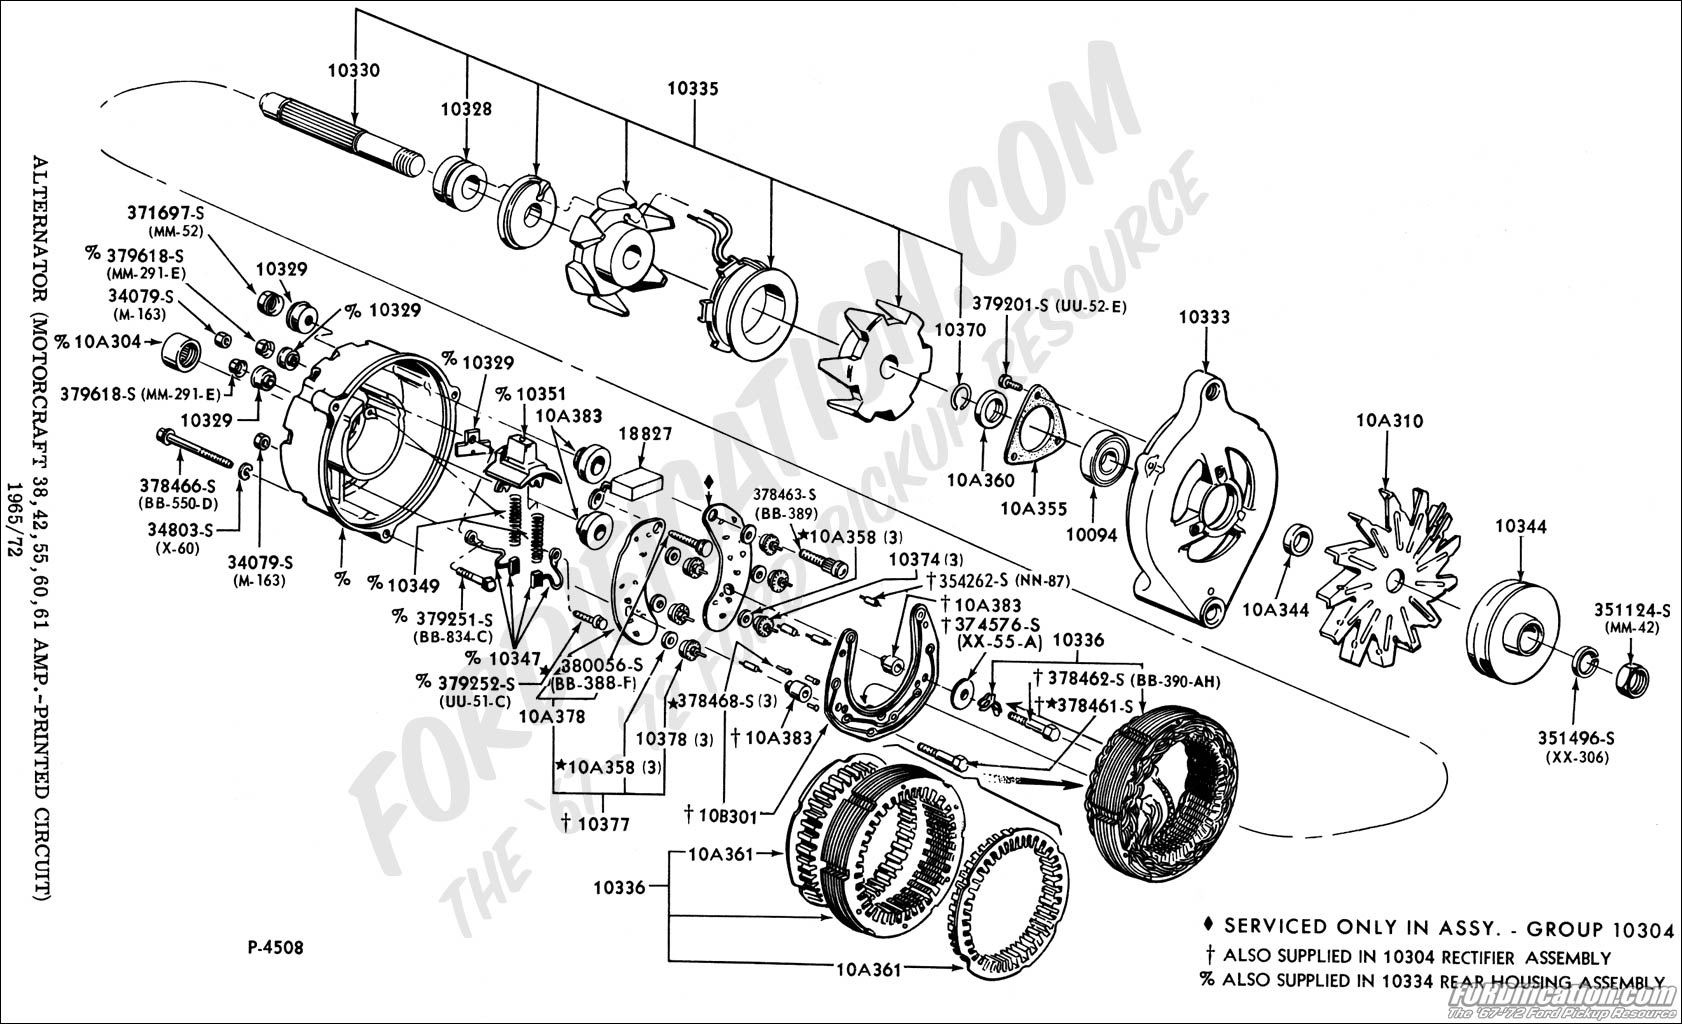 Ford Truck Alternator Diagram Wiring Schematic Alt Technical Drawings And Schematics Section I 70